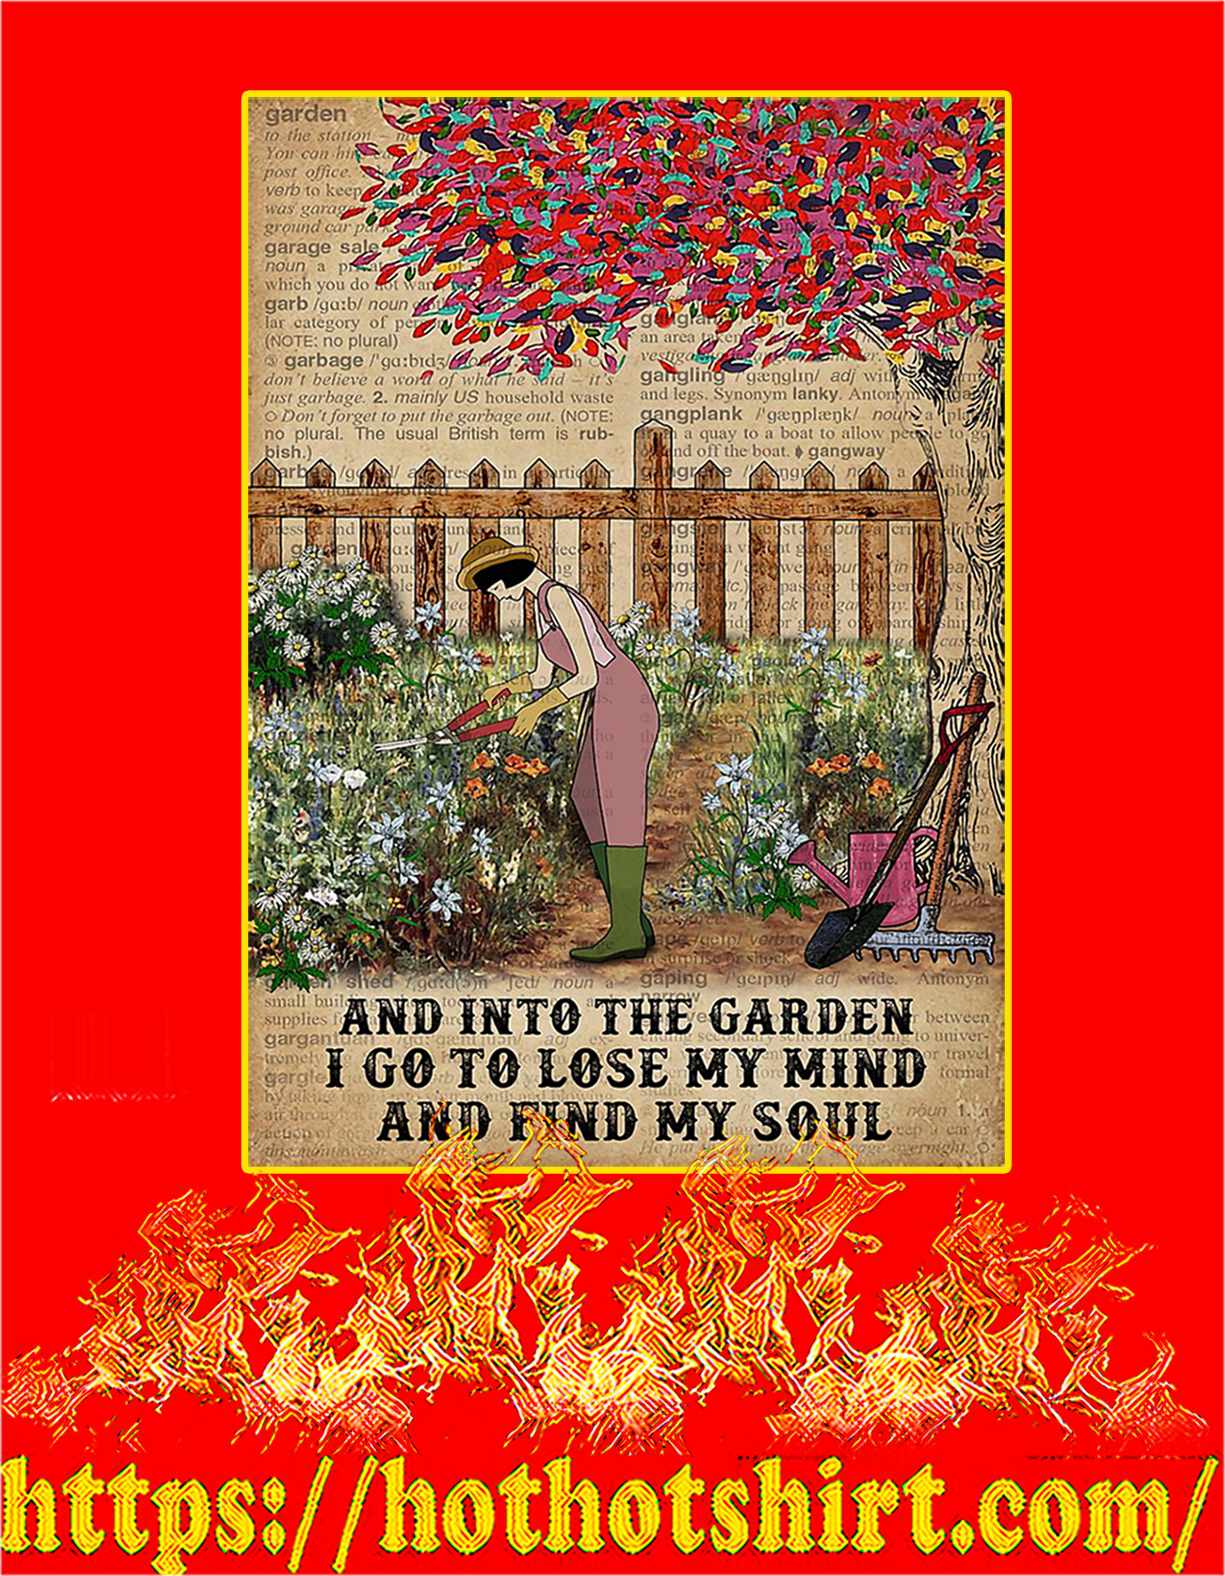 And into the garden I go to lose my mind and find my soul poster - A4